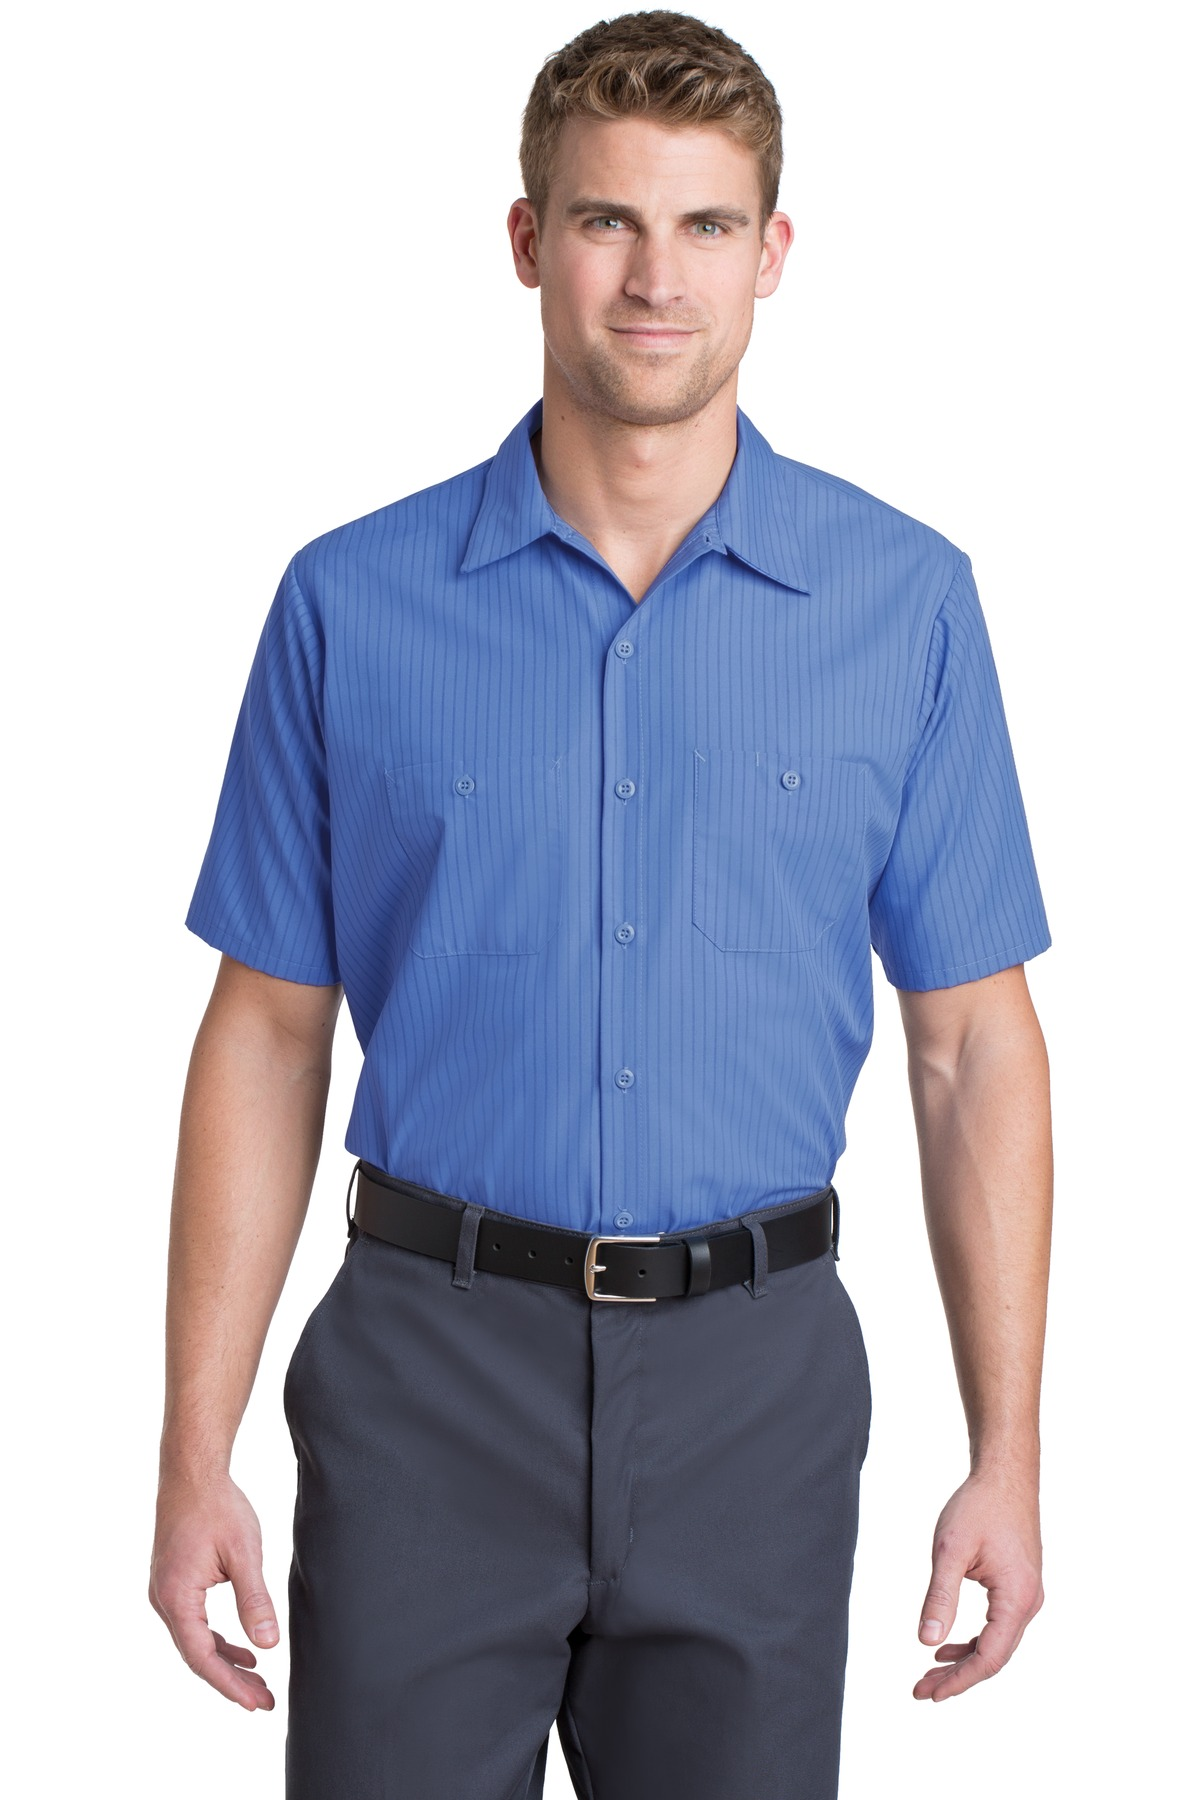 Red Kap ®  Short Sleeve Striped Industrial Work Shirt.  CS20 - Petrol Blue/ Navy